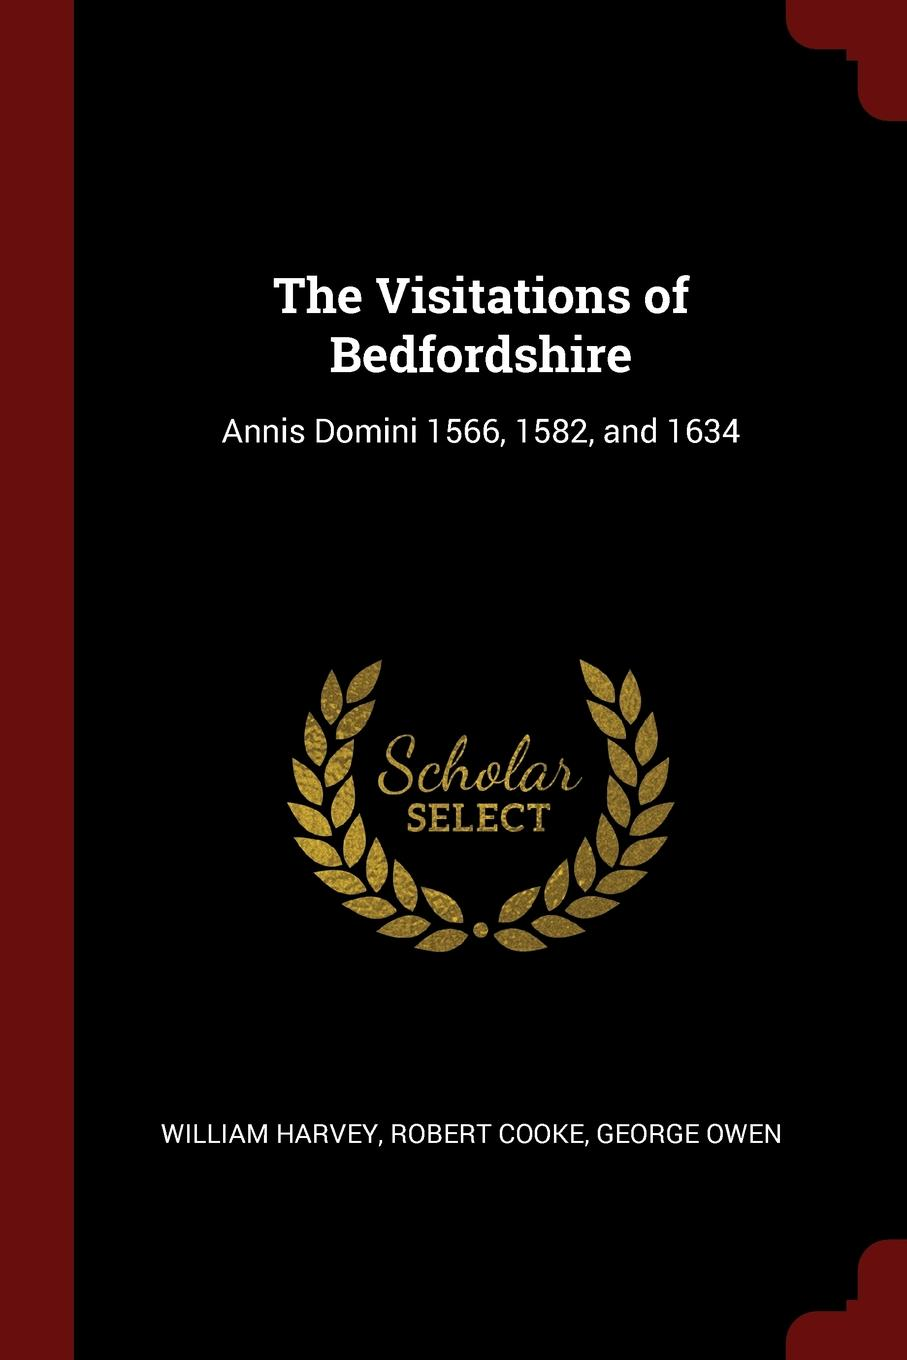 The Visitations of Bedfordshire. Annis Domini 1566, 1582, and 1634